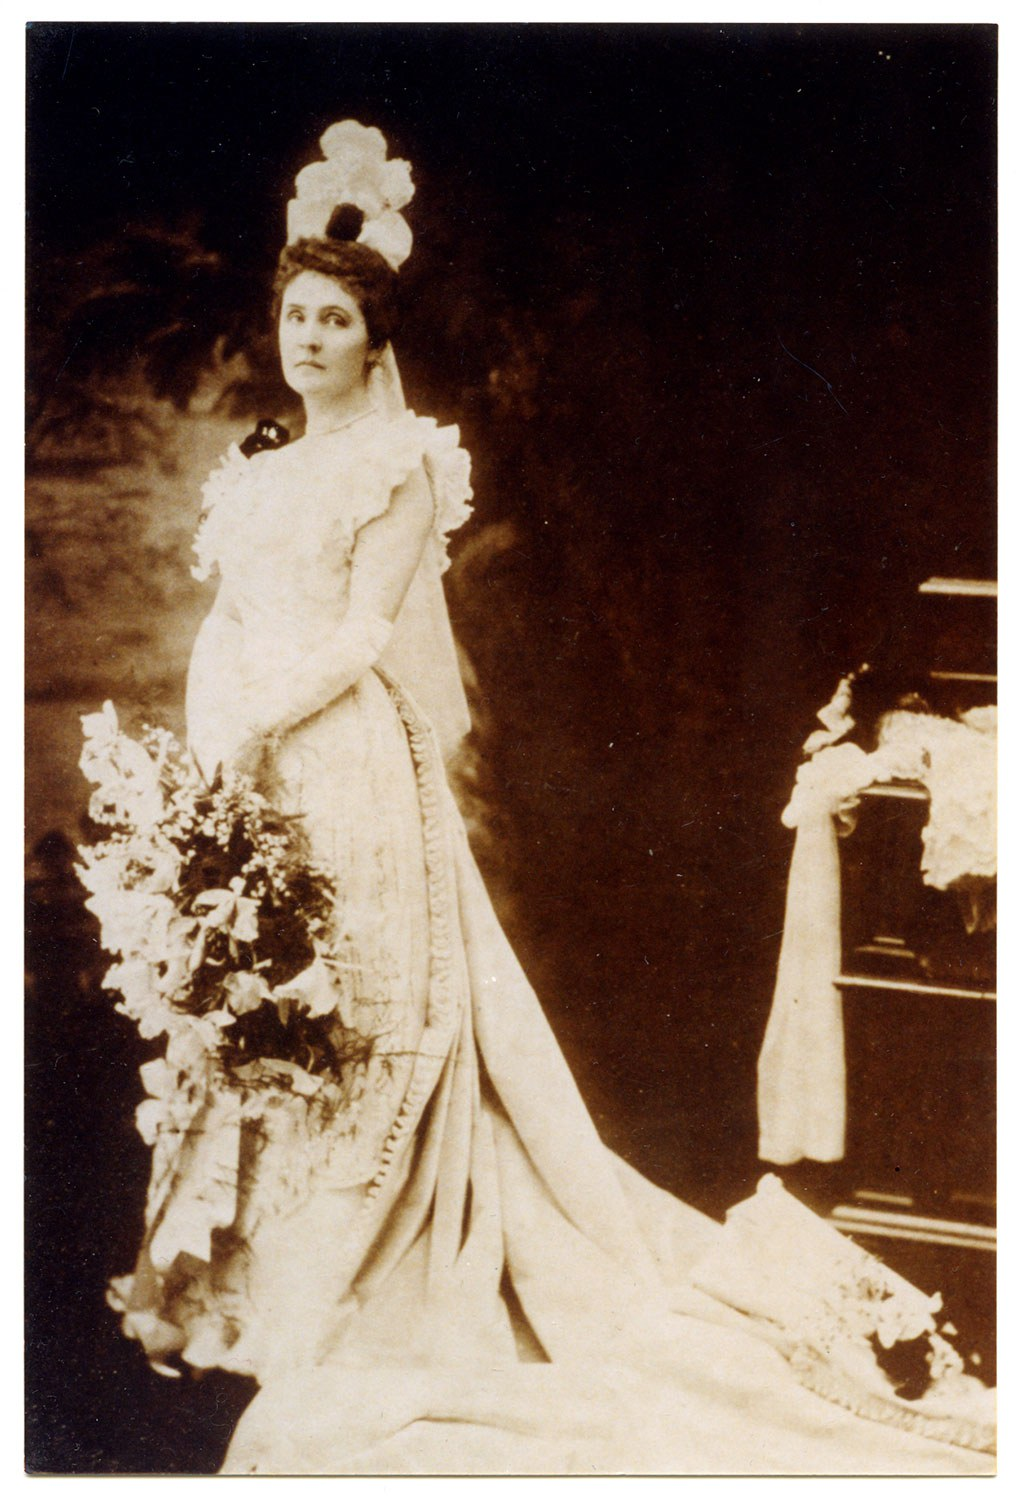 Mary Fulford dressed for presentation to the court of Queen Victoria circa 1900